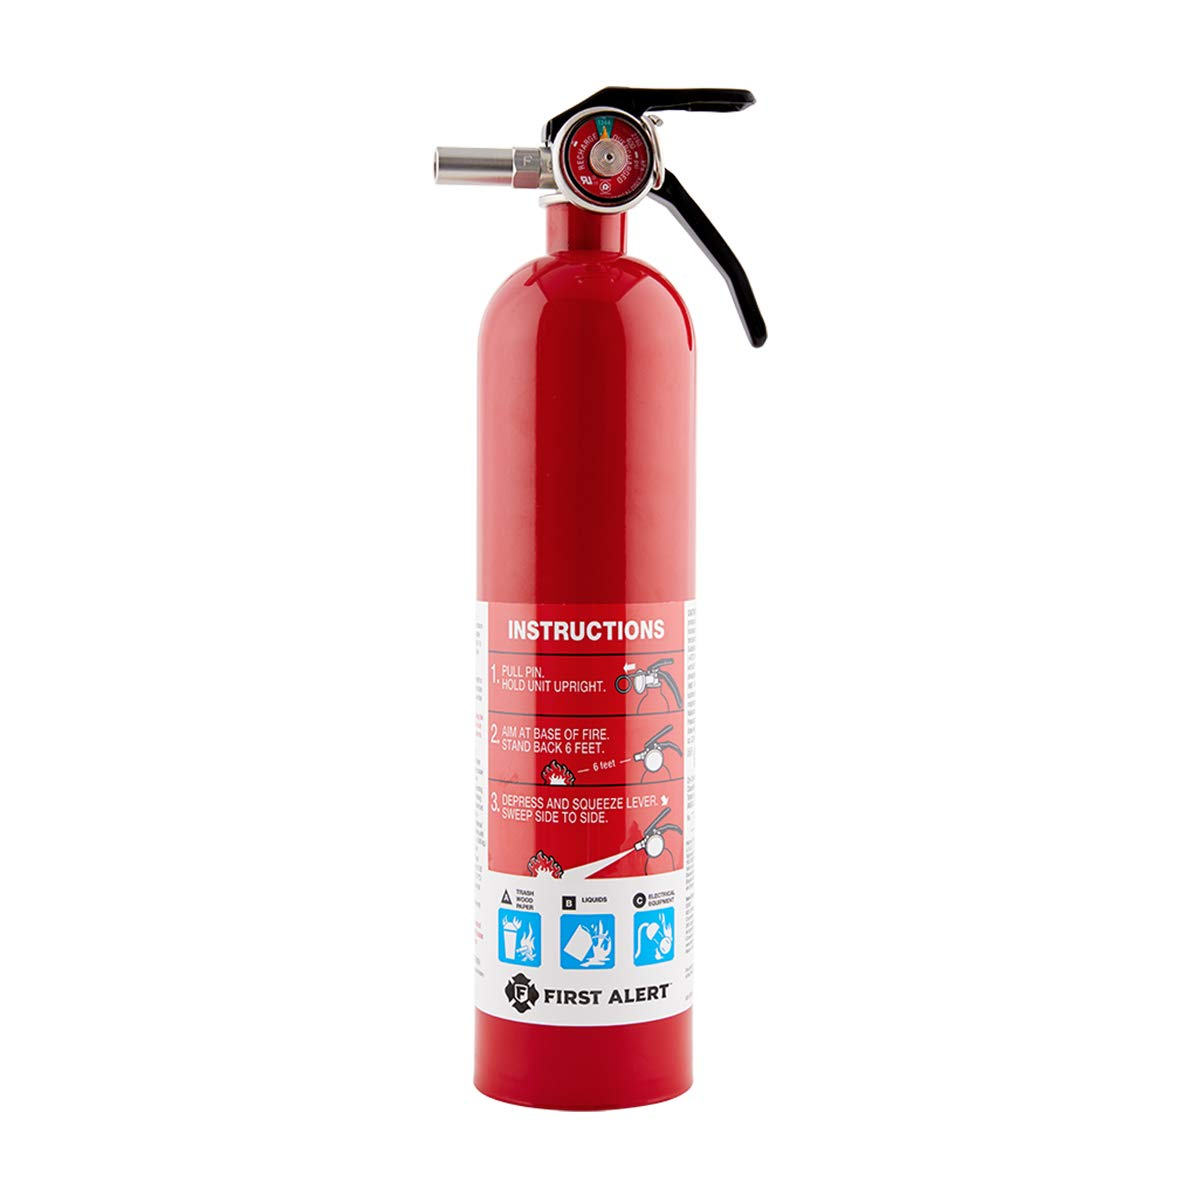 First Alert 1038789 Standard Home Fire Extinguisher, Red by First Alert